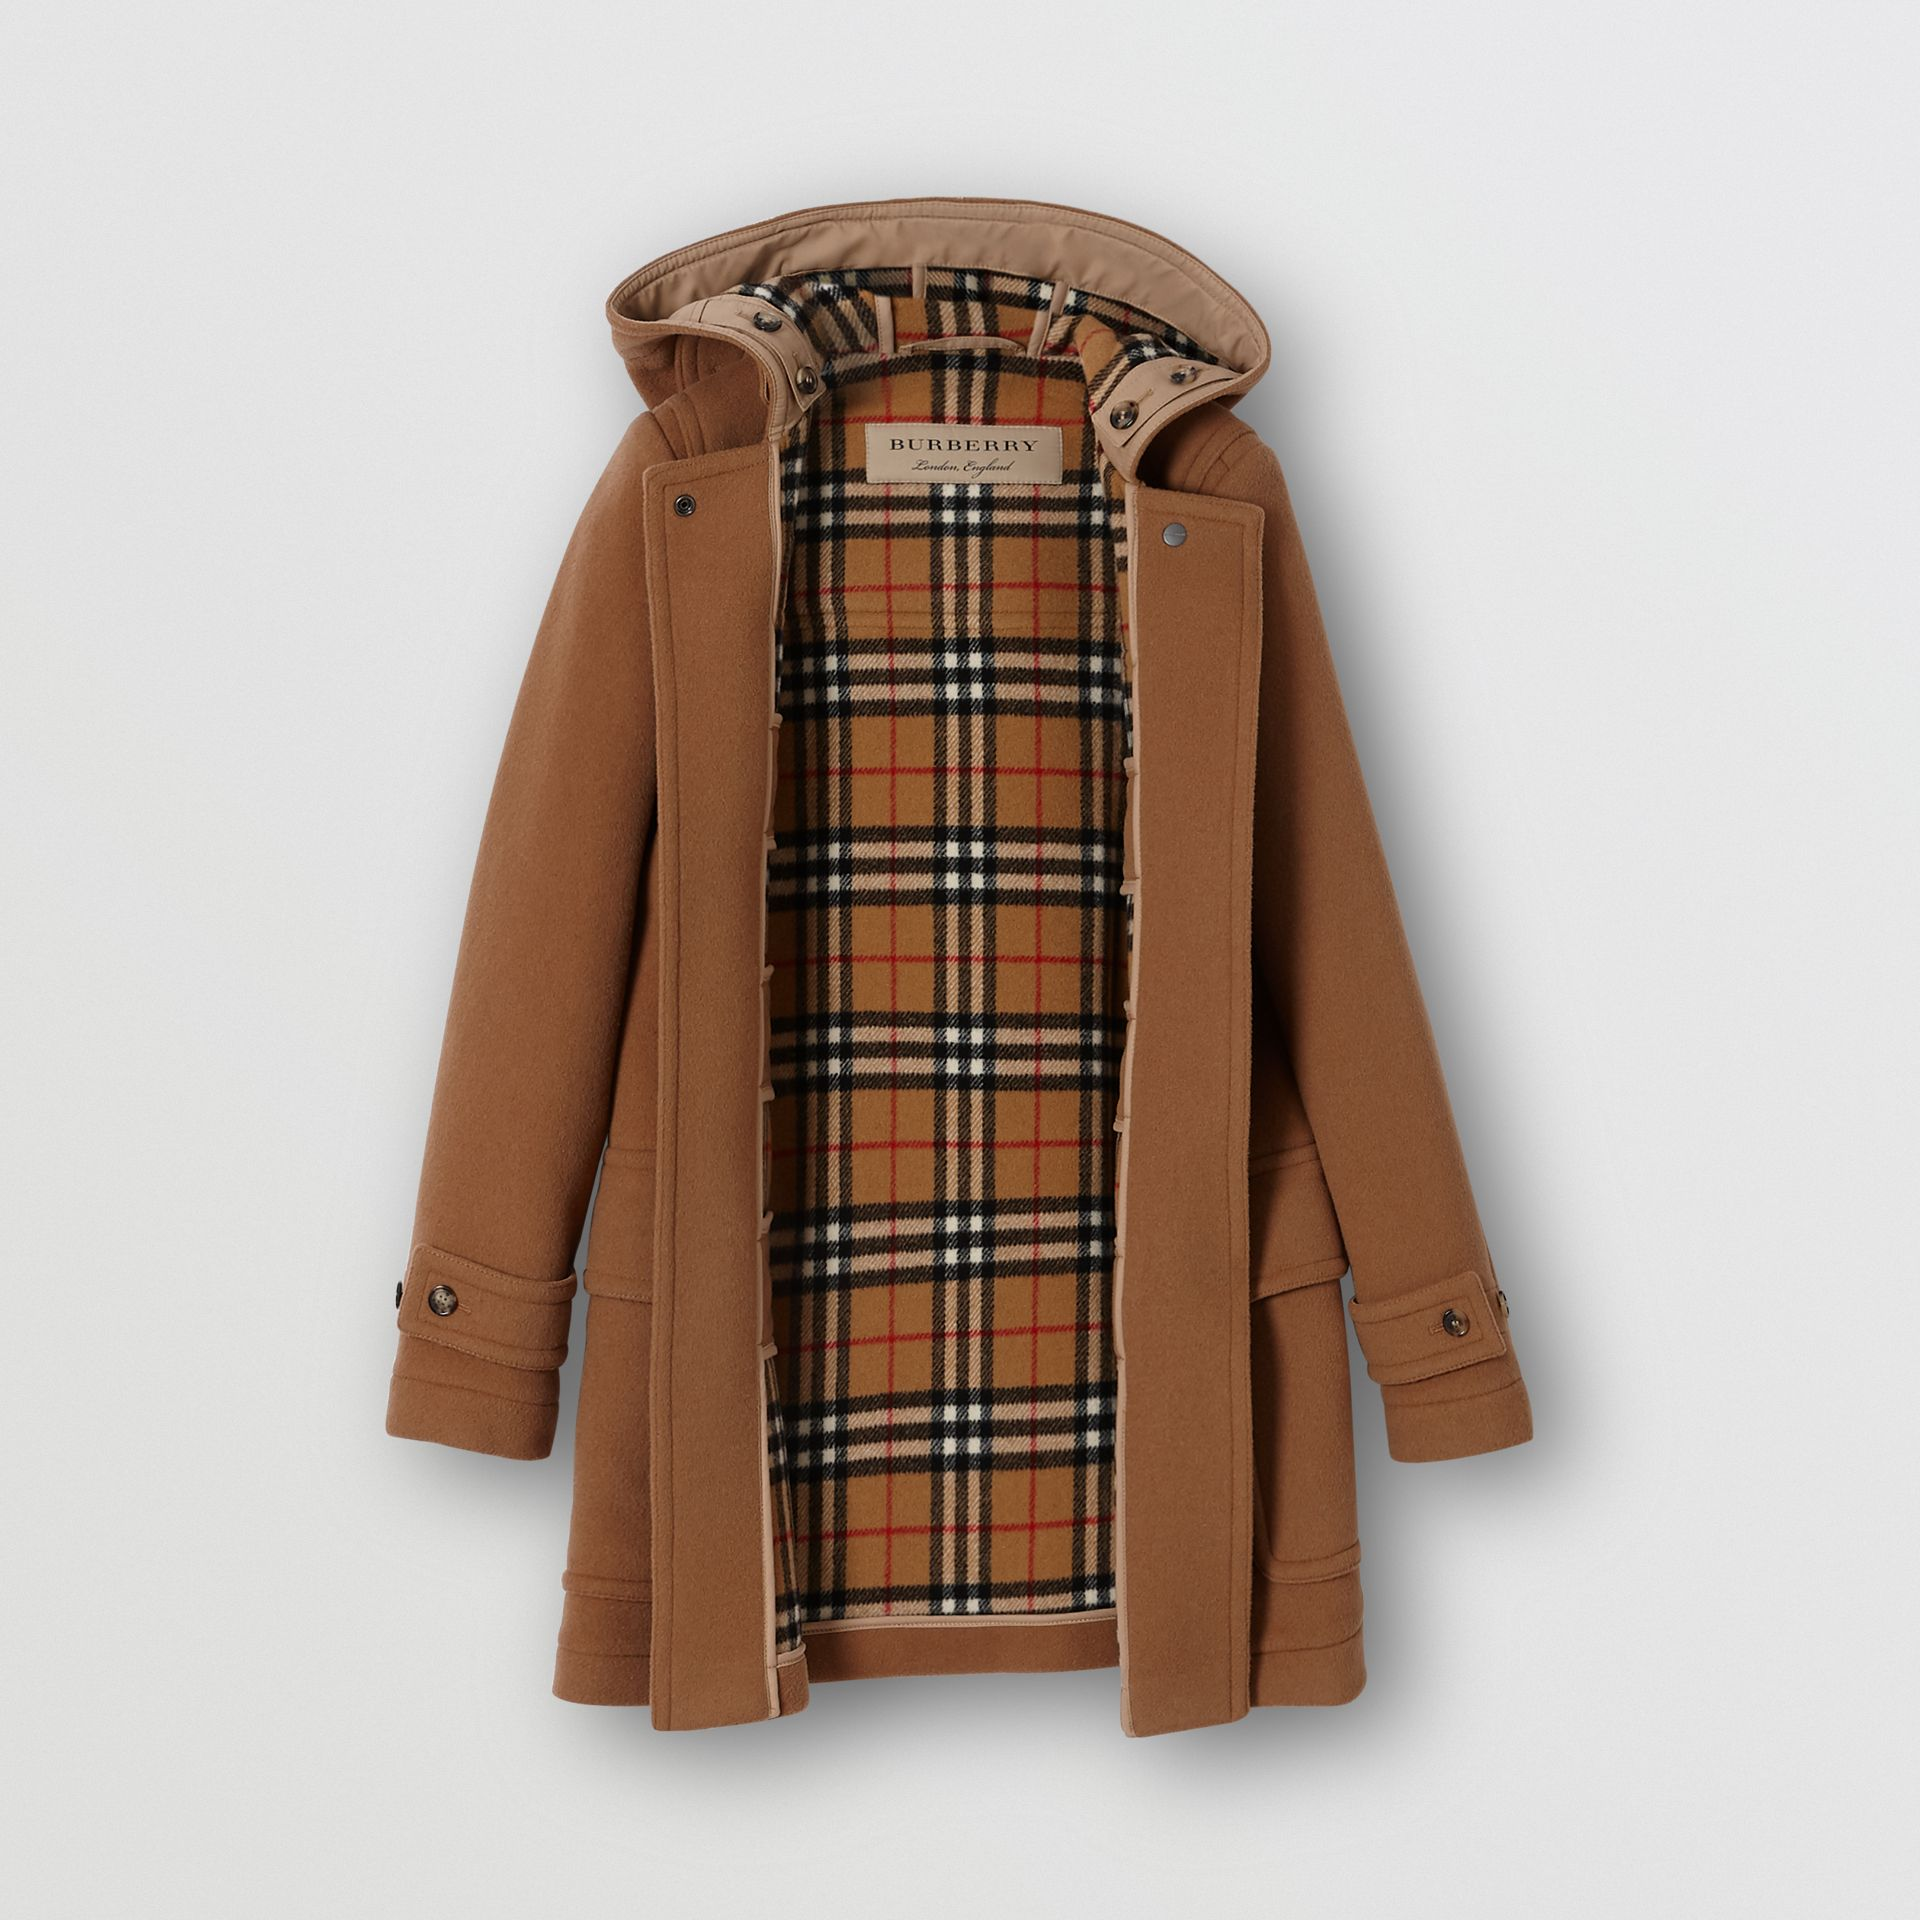 Wool Blend Duffle Coat in Camel - Women | Burberry United States - gallery image 3